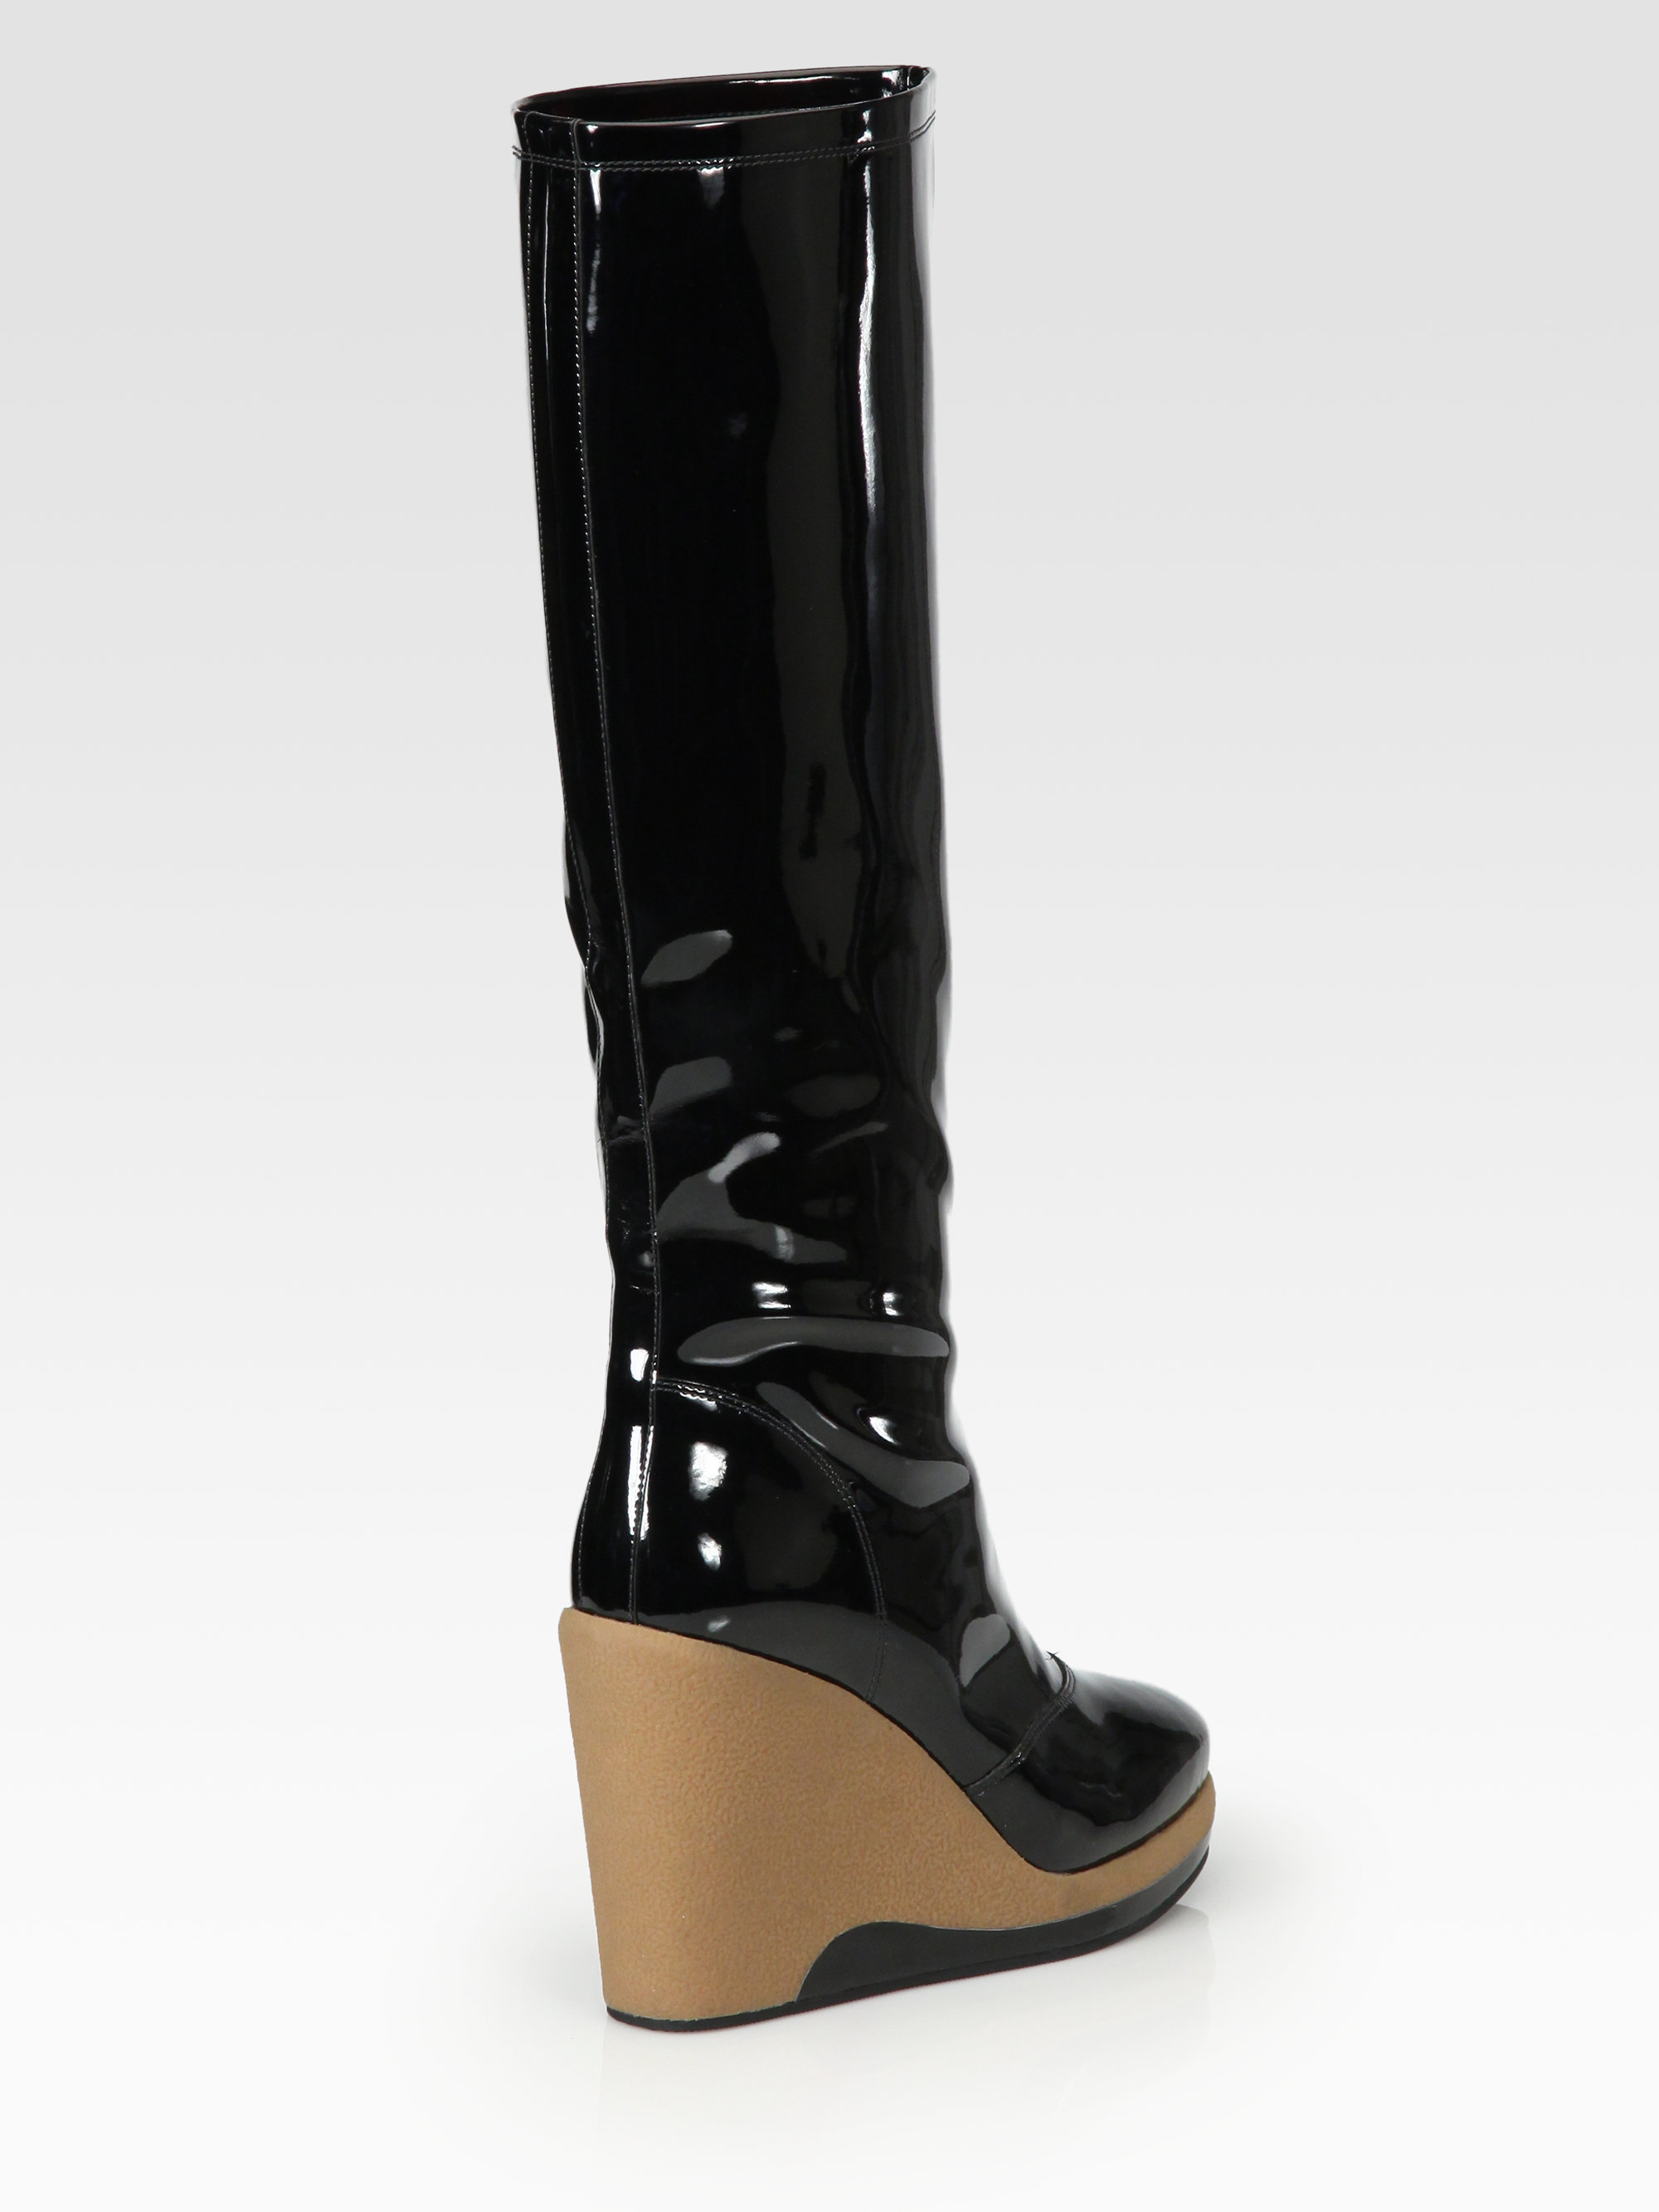 marc by marc jacobs patent leather knee high wedge rain. Black Bedroom Furniture Sets. Home Design Ideas